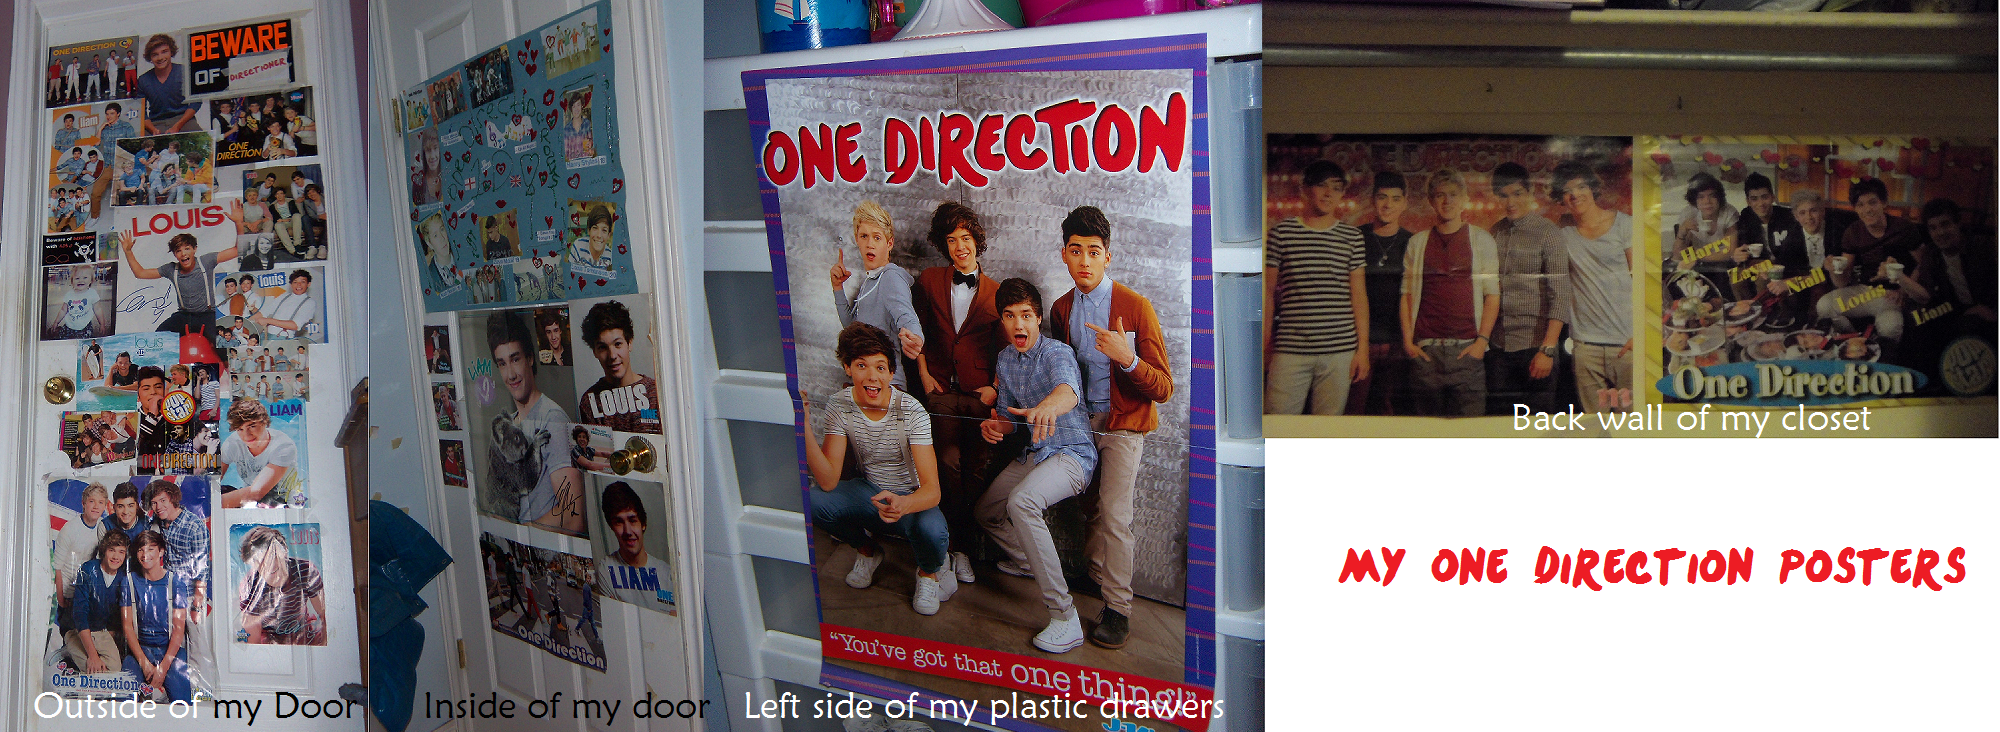 One Direction 2012 Posters My One Direction Poste...